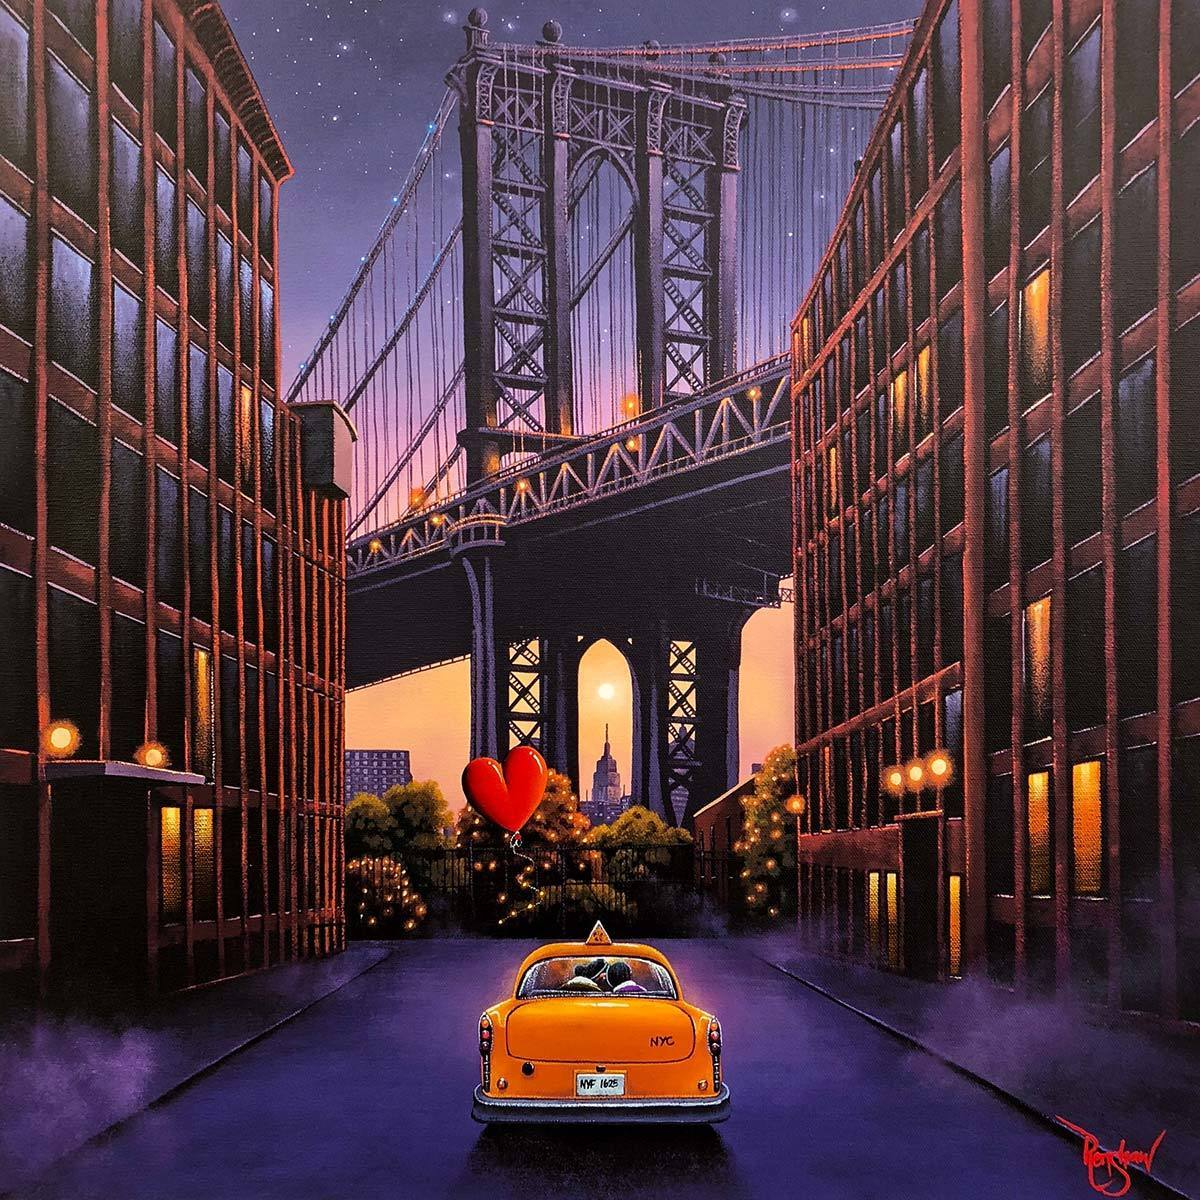 A New York Fairytale - Limited Edition David Renshaw